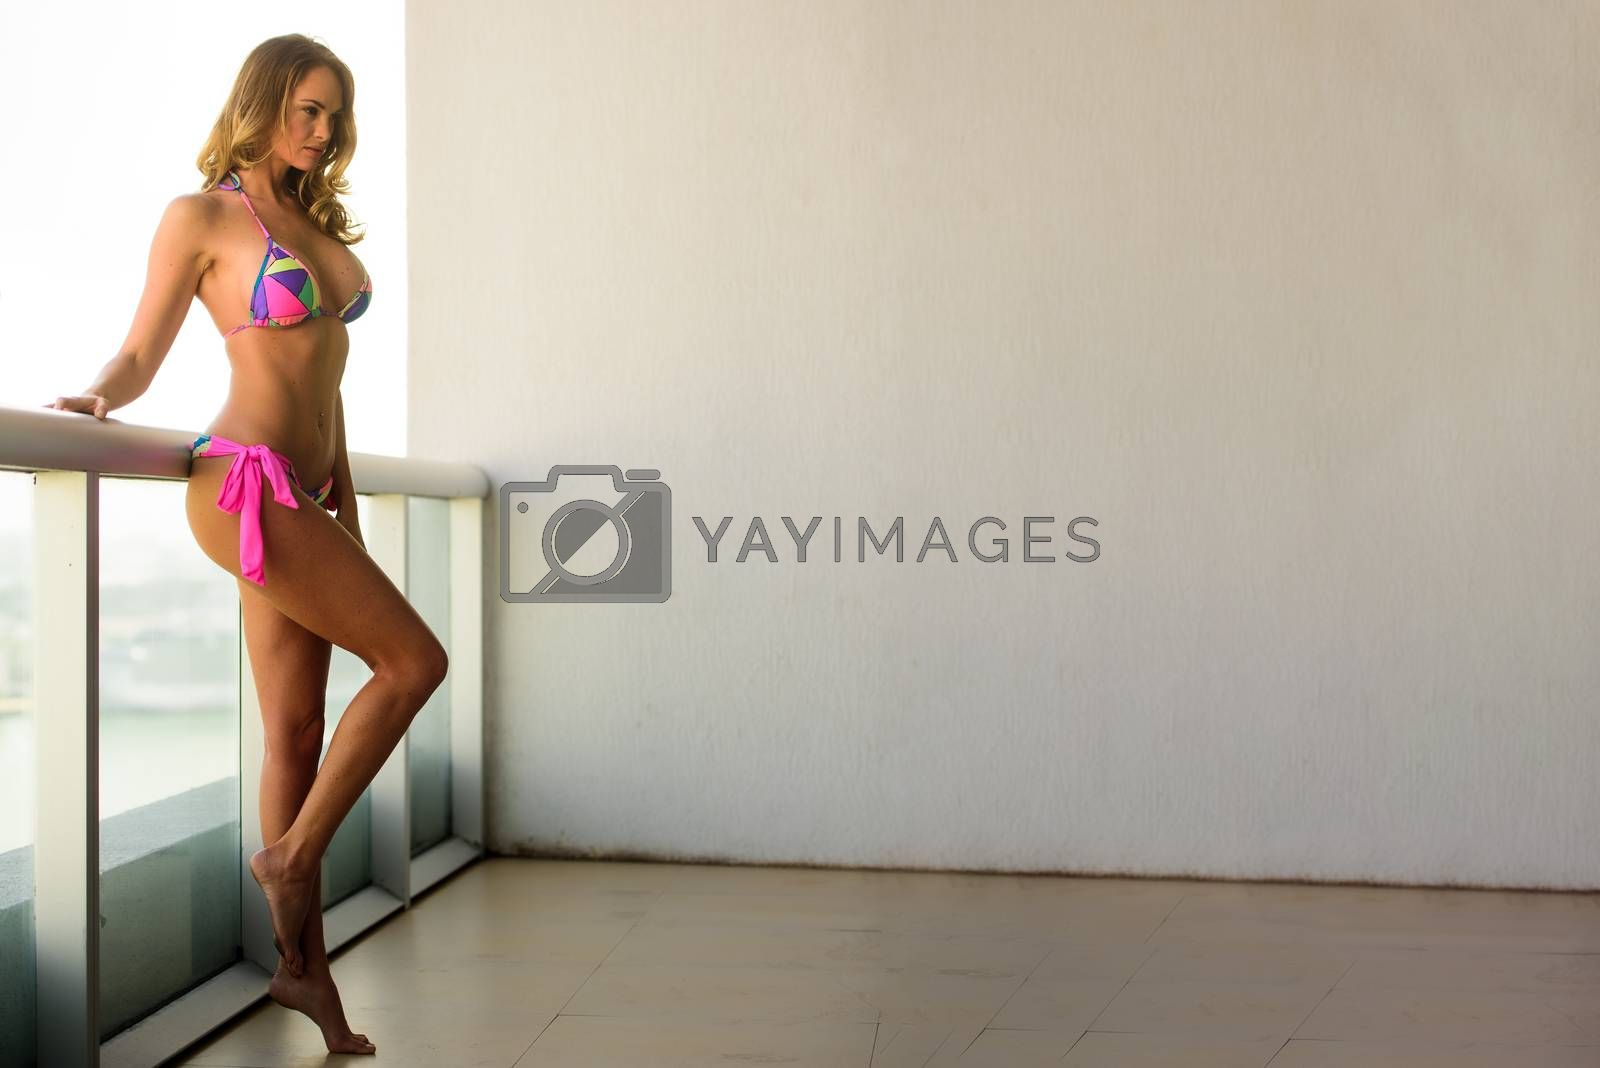 Image of an attractive young woman posing